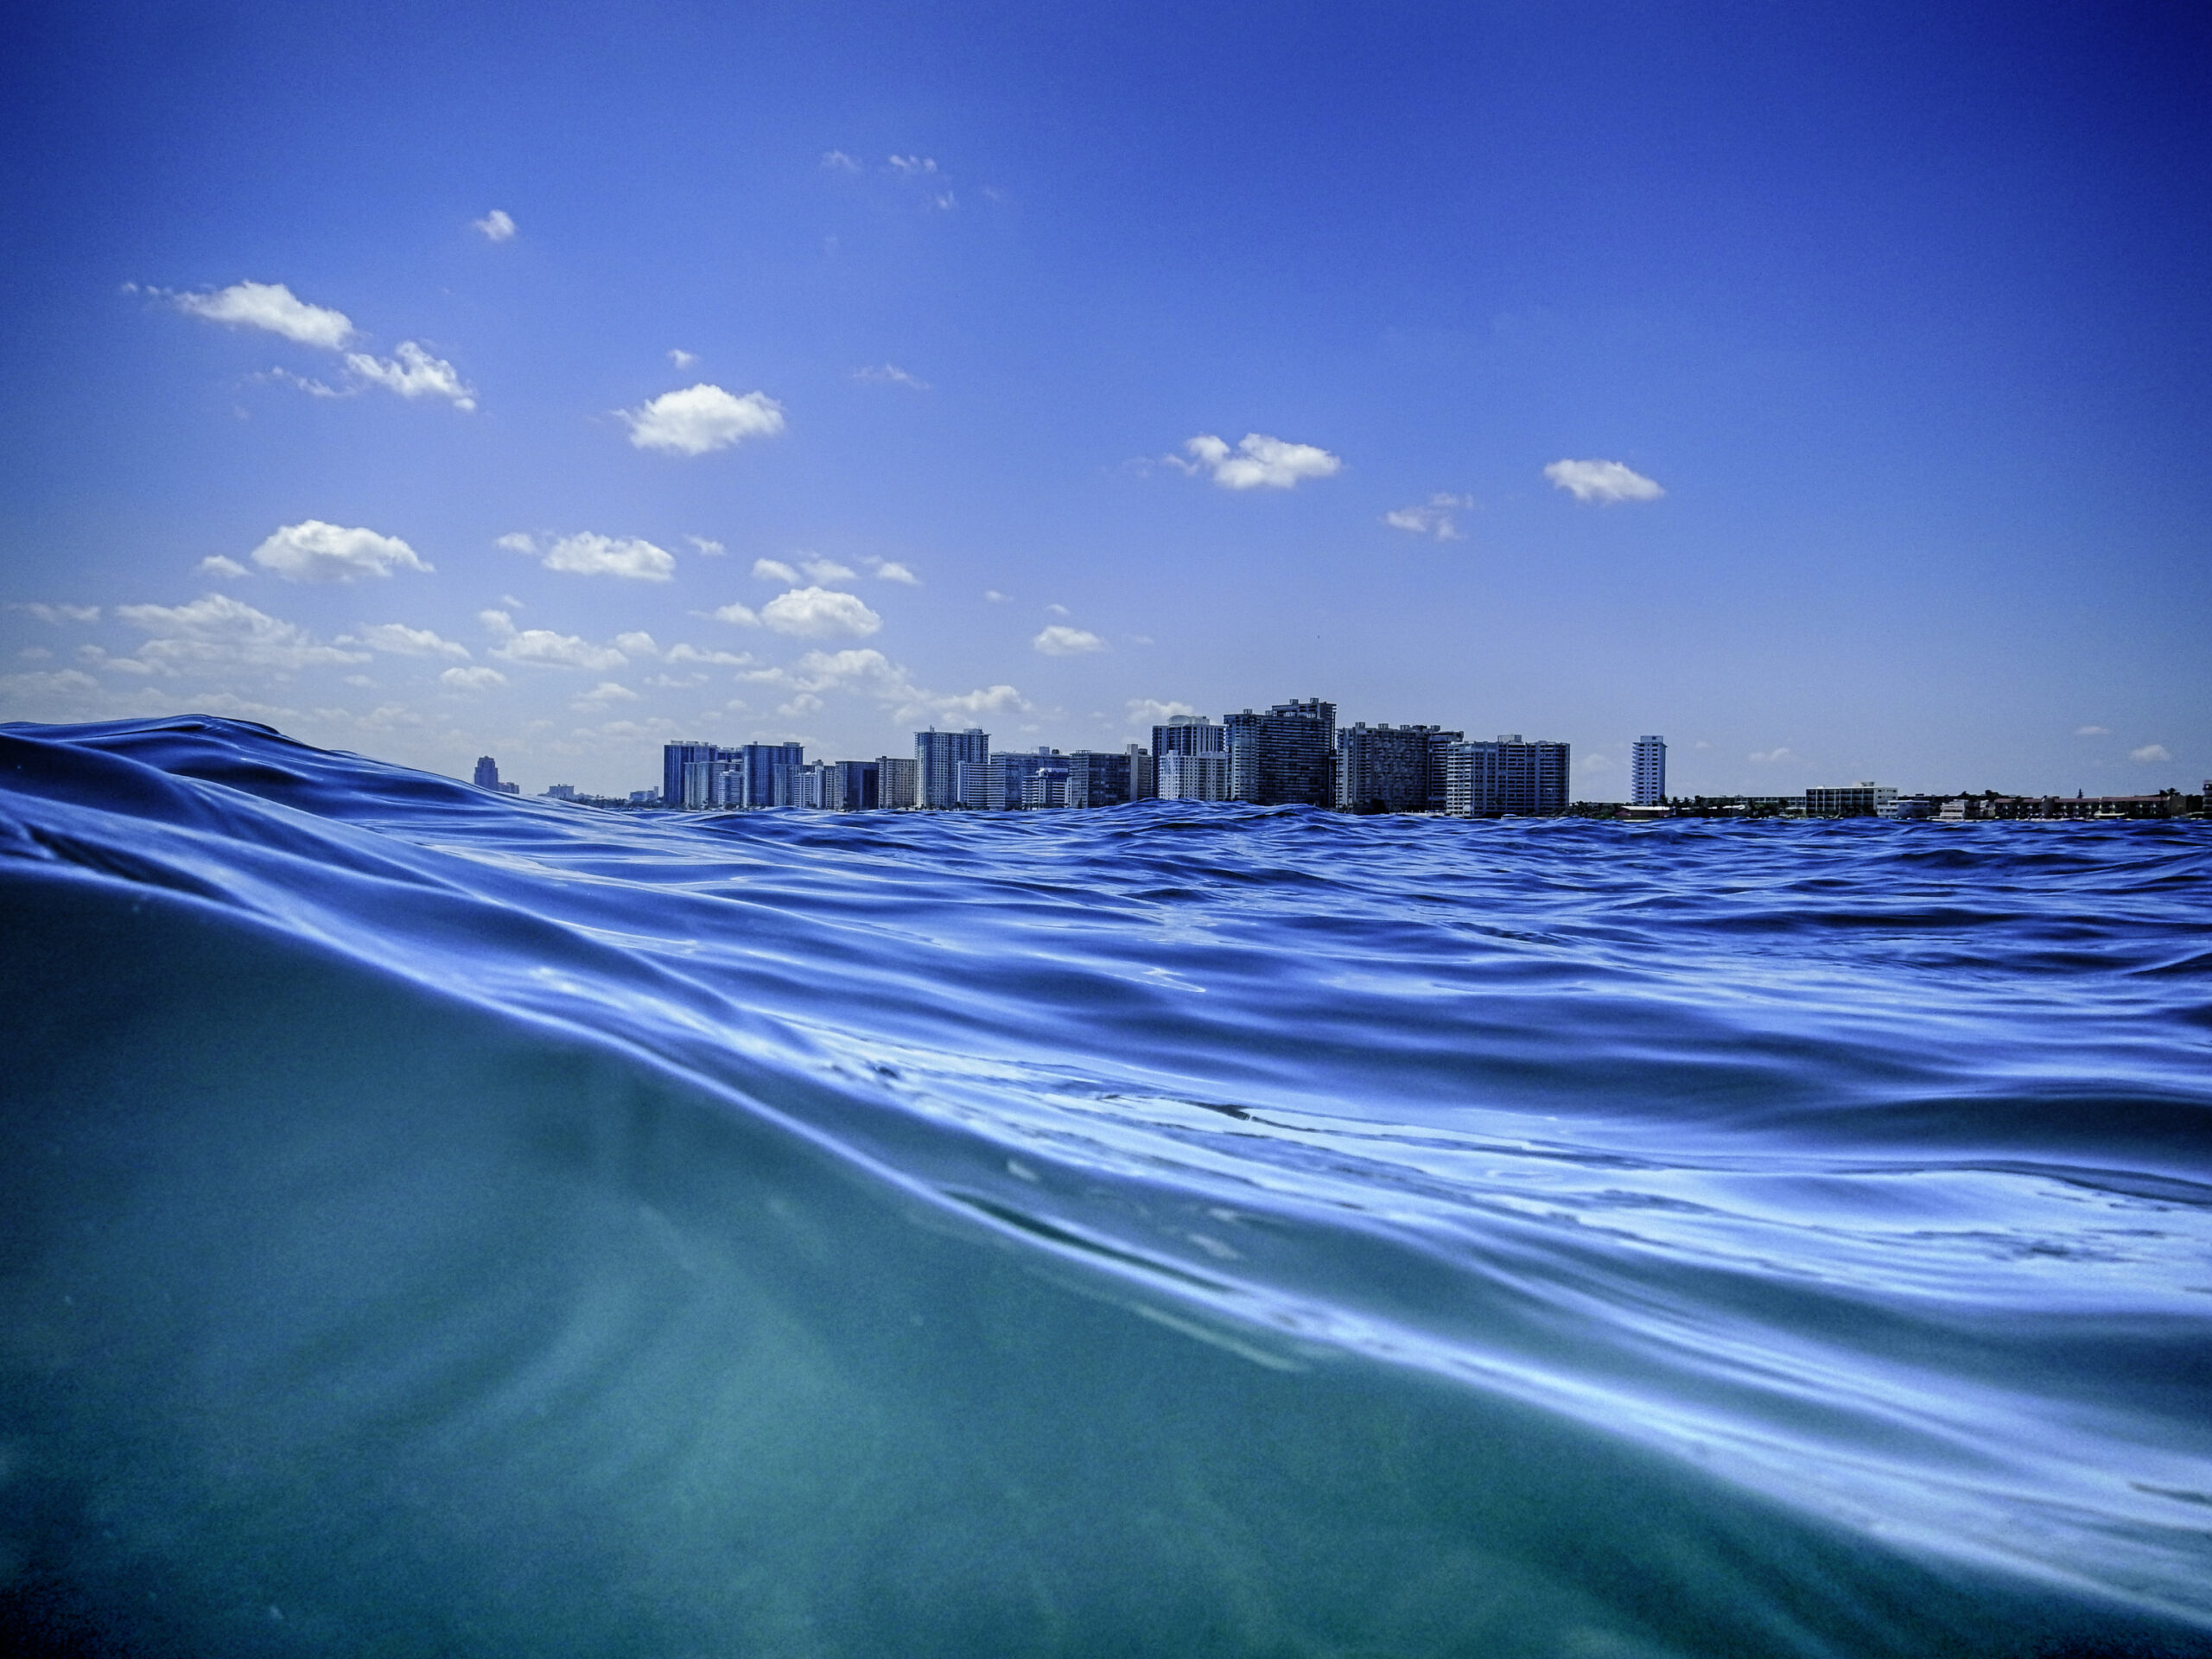 Sea view of Fort Lauderdale